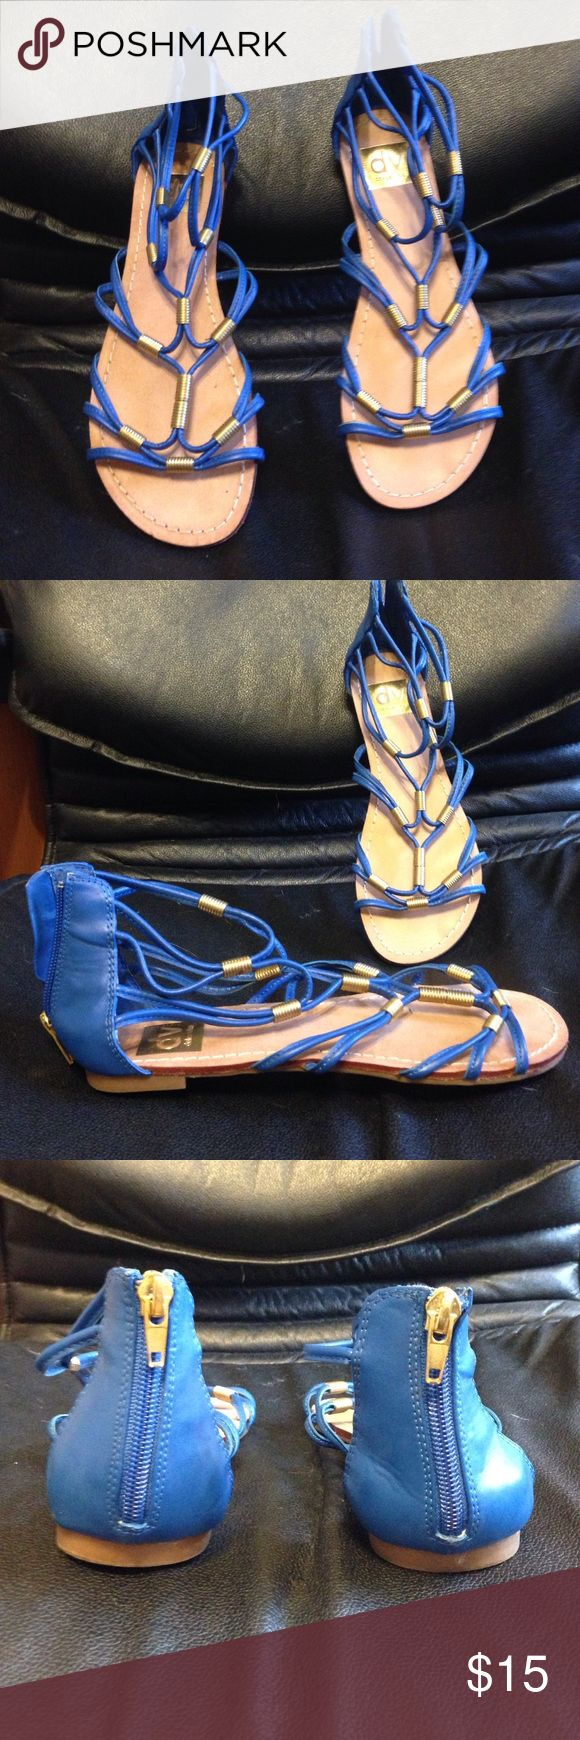 Blue DV by Dolce Vita gladiator flats size 8! Bright and funky royal blue gladiator flats with gold details by DV by Dolce Vita. Not positive, but I believe they are faux leather. DV by Dolce Vita Shoes Flats & Loafers